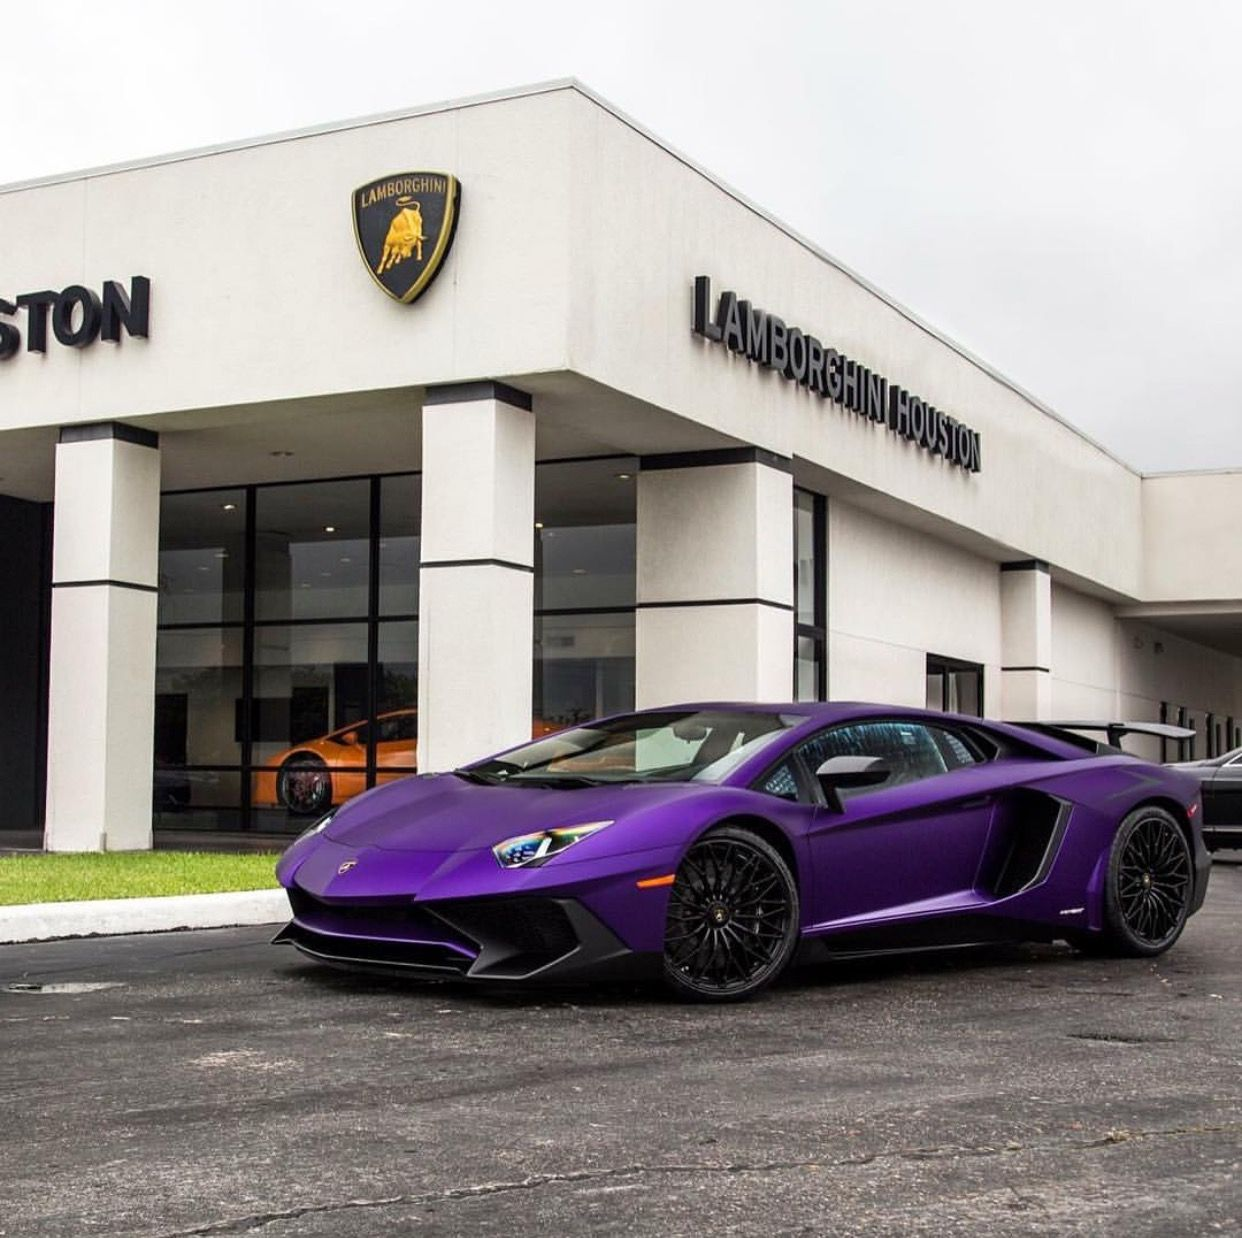 High Quality Lamborghini Aventador Super Veloce Coupe Painted In Viola Mel Photo Taken  By: @lambohouston On Good Ideas